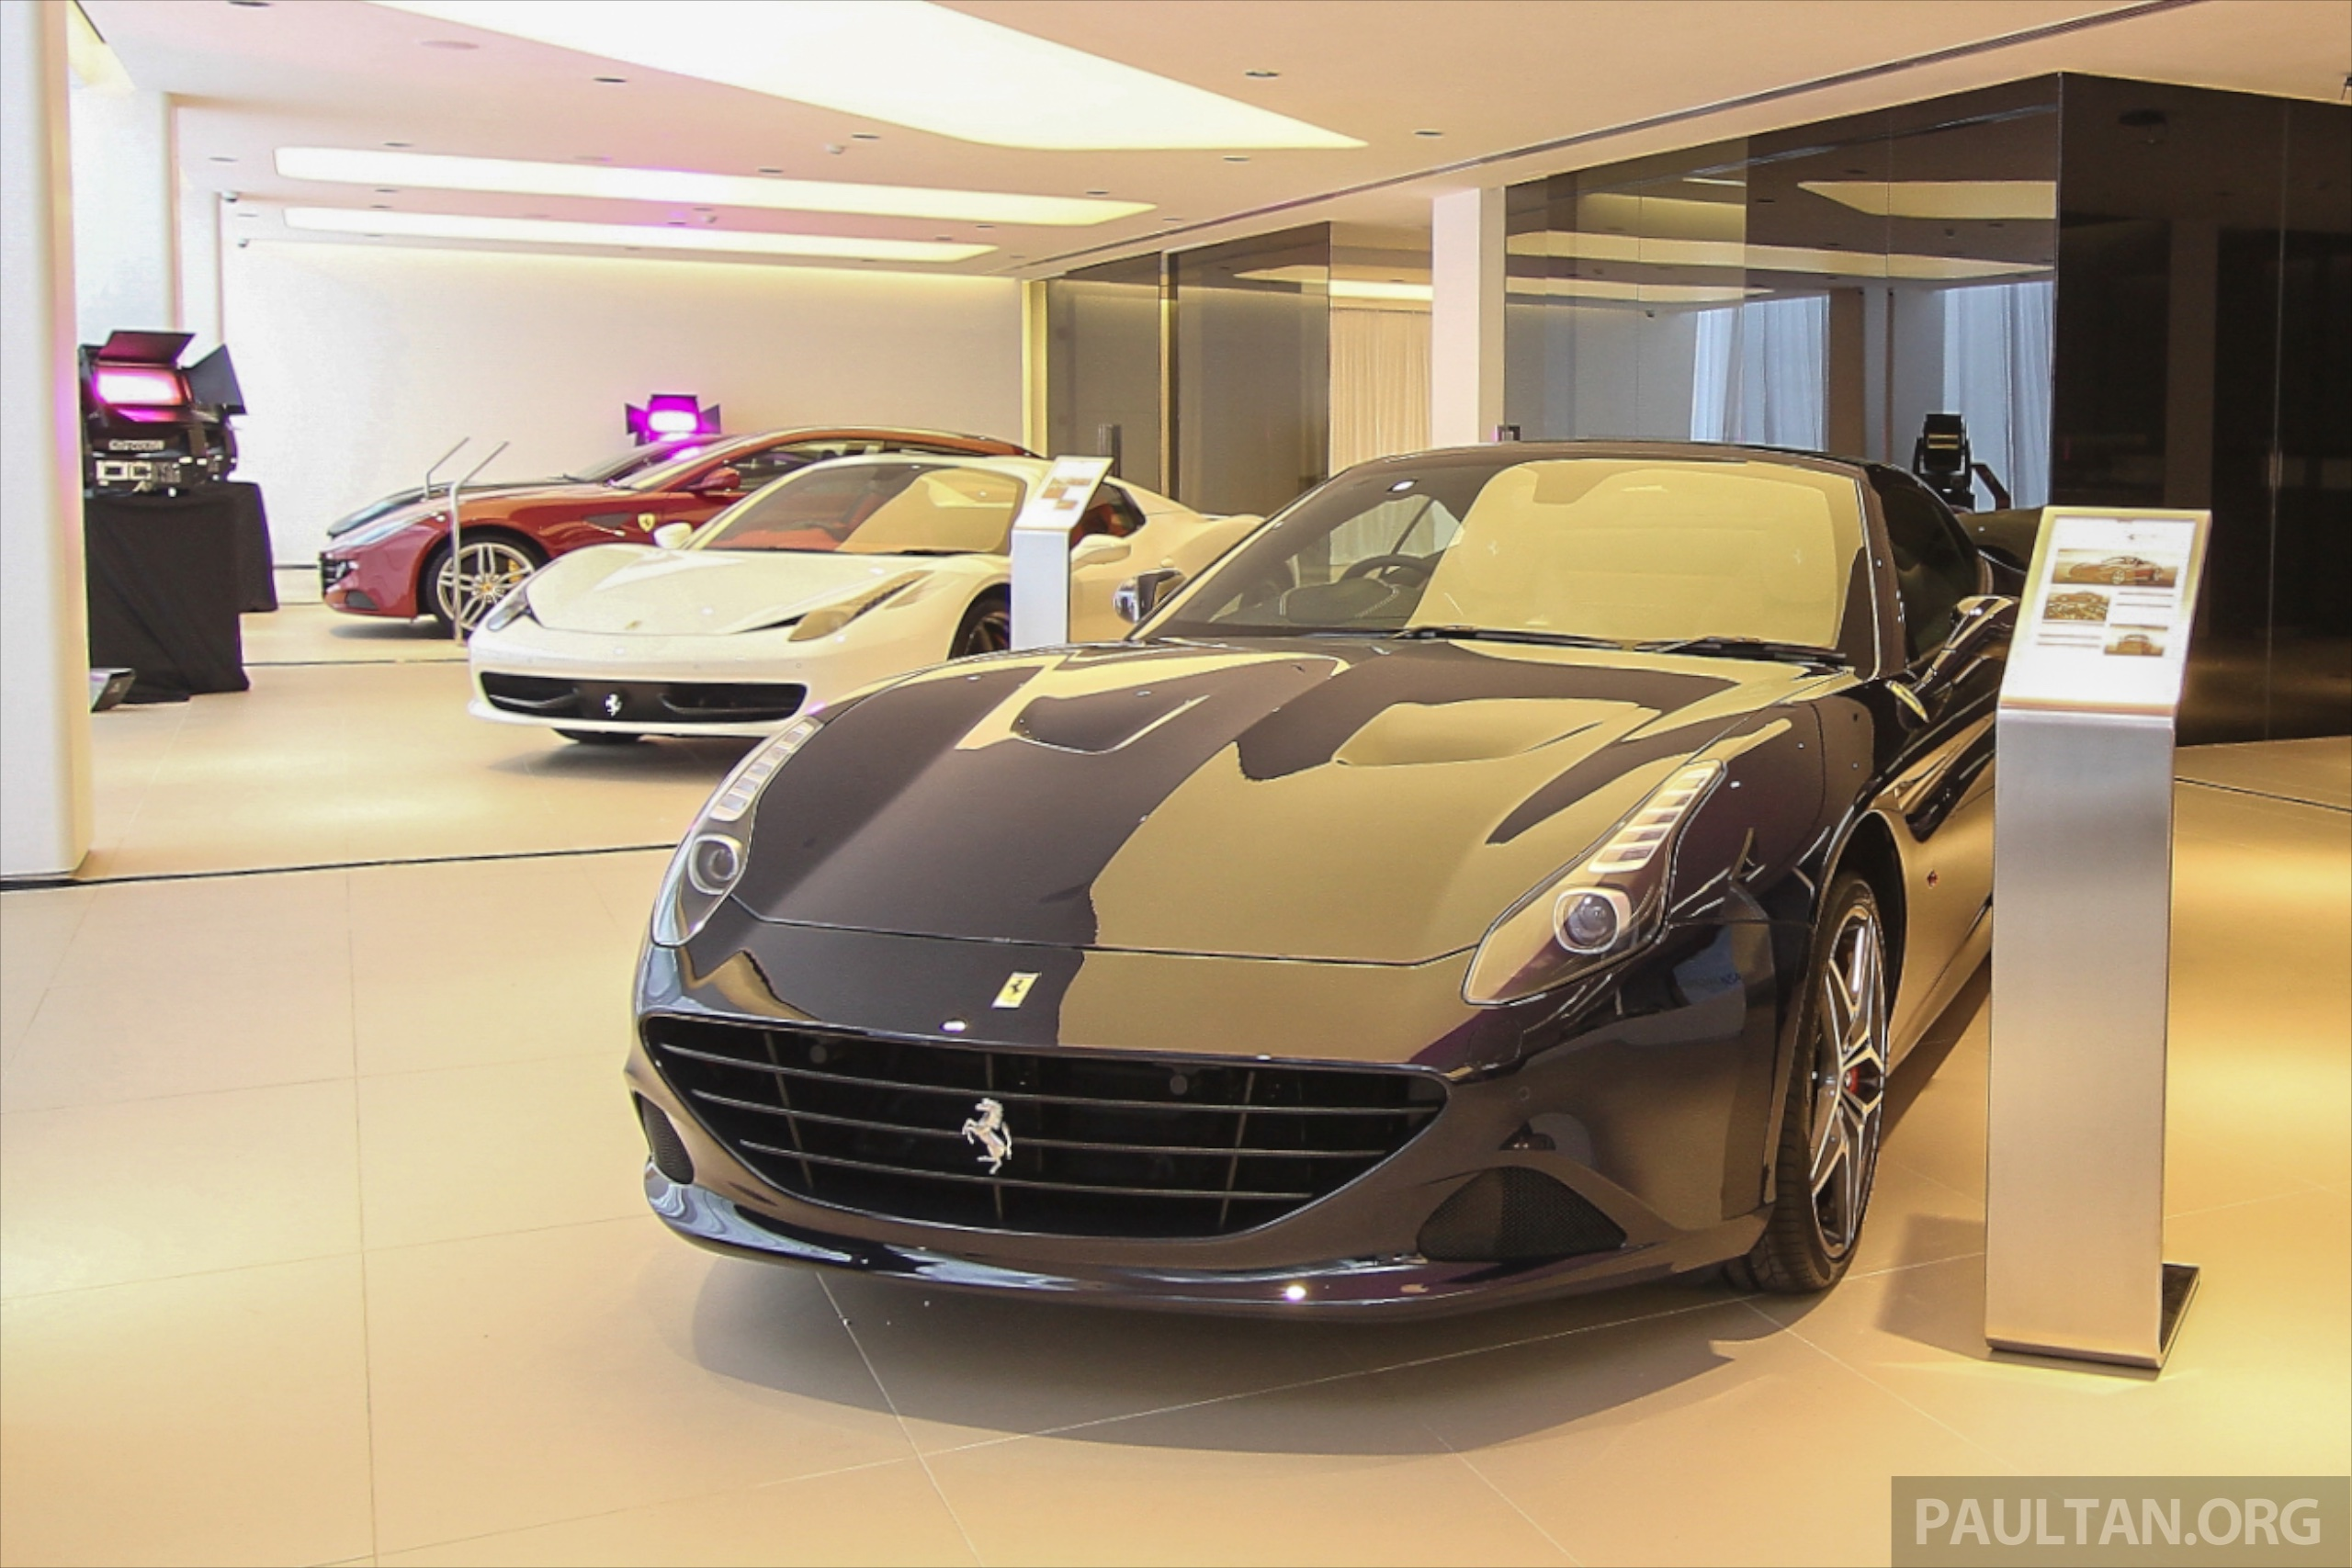 Ferrari Maserati Prices Unchanged Despite Gst Falling